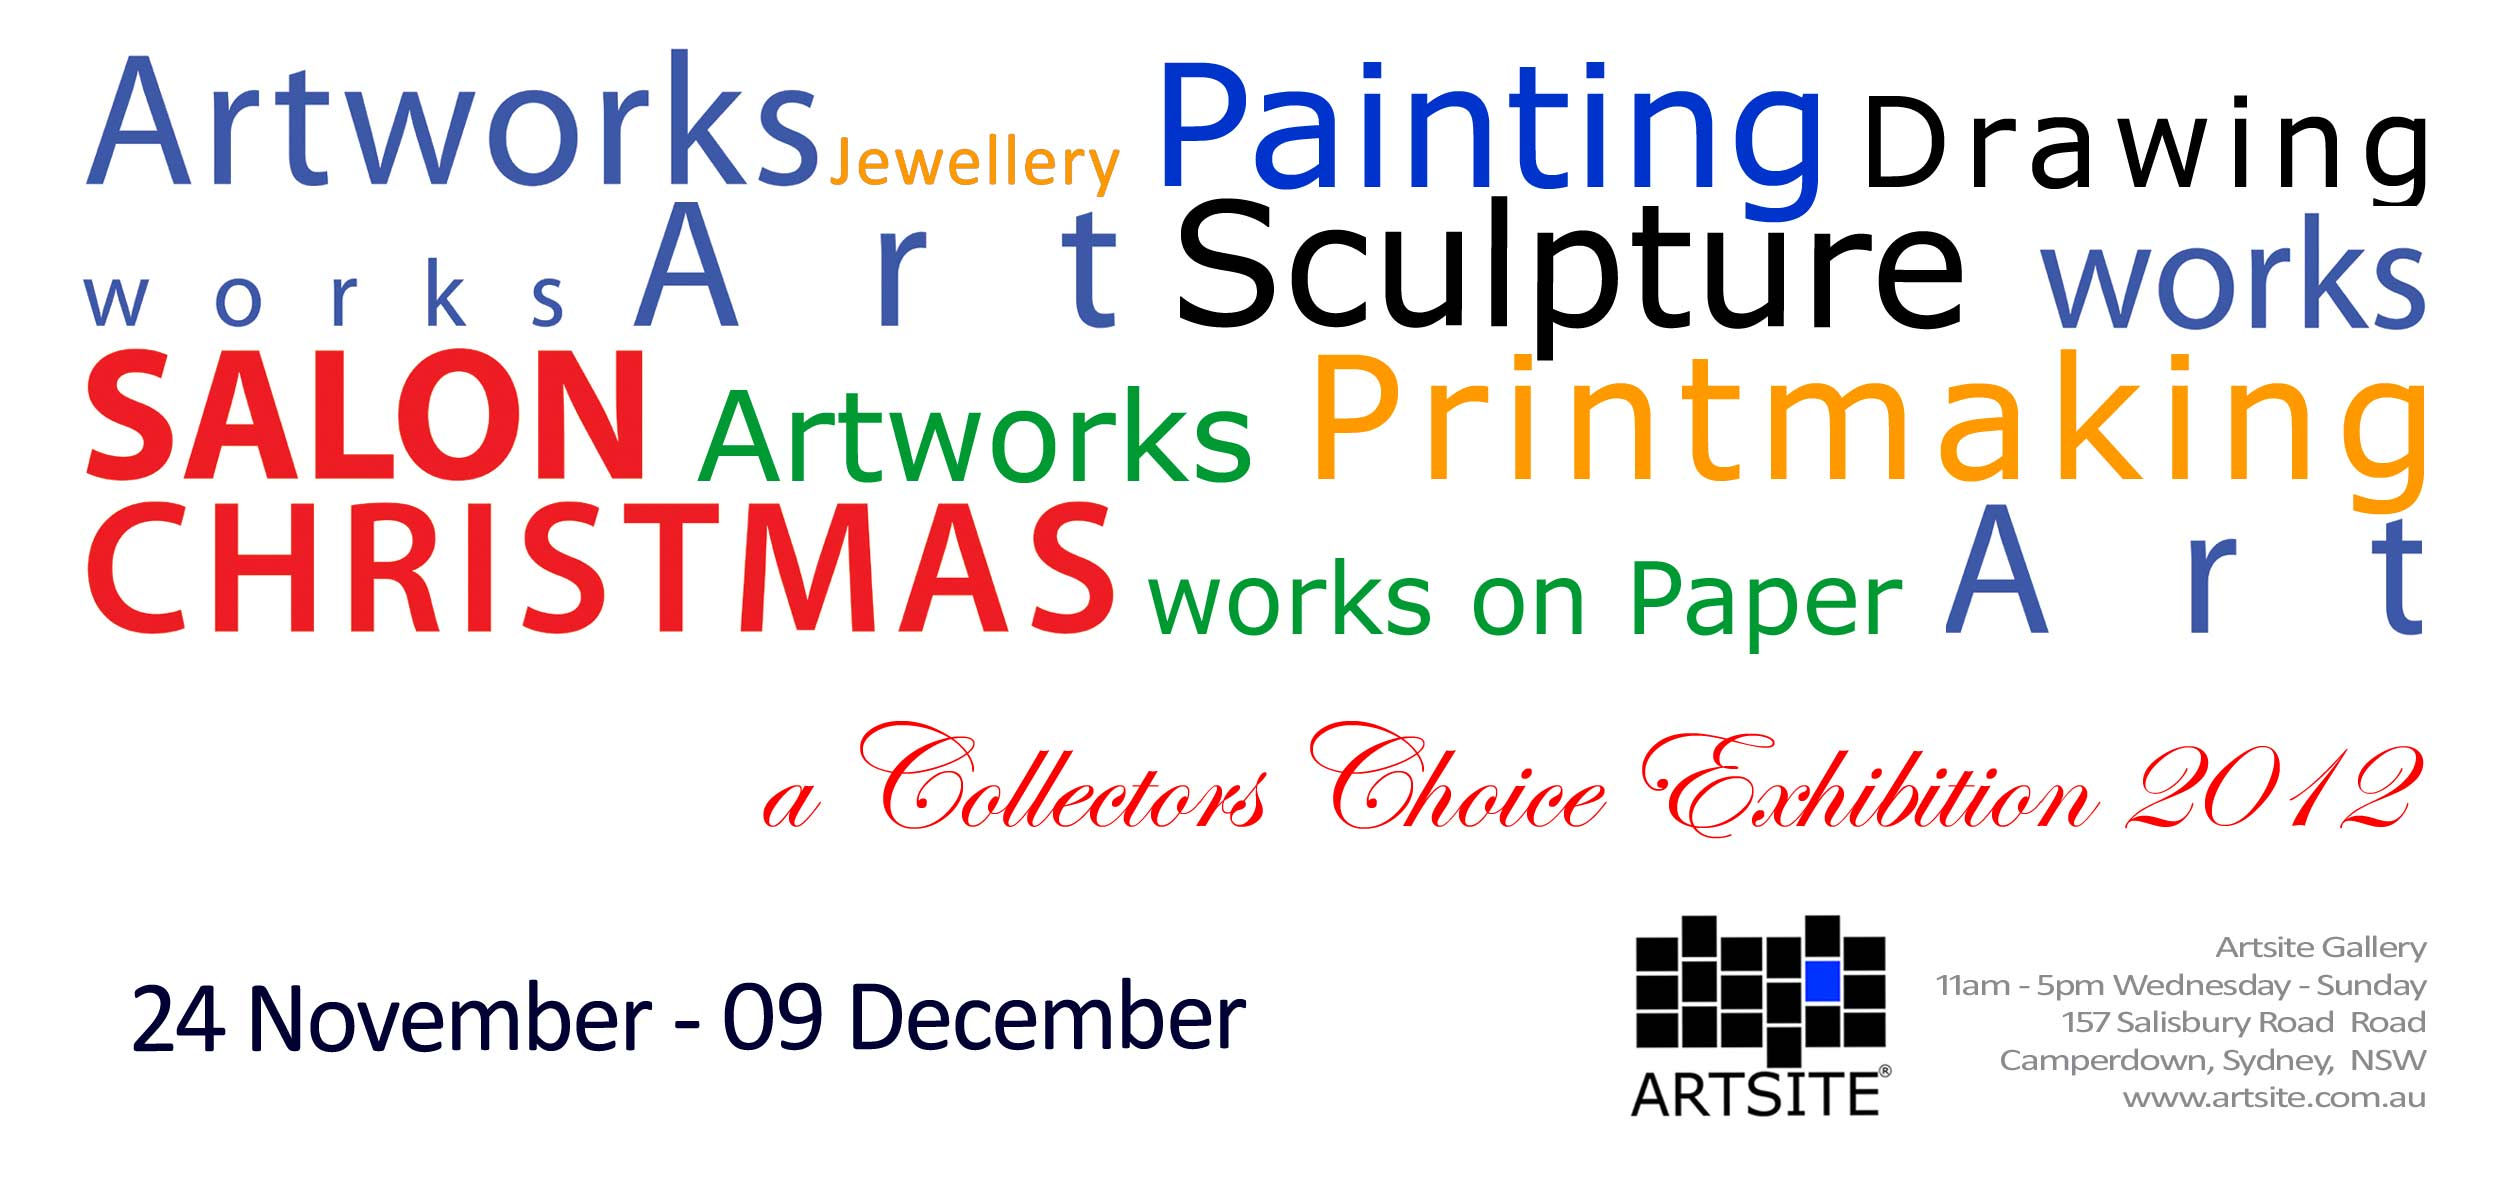 View Exhibition at Artsite Gallery, Sydney: 24 November - 09 December 2012. Collectors Choice 2012